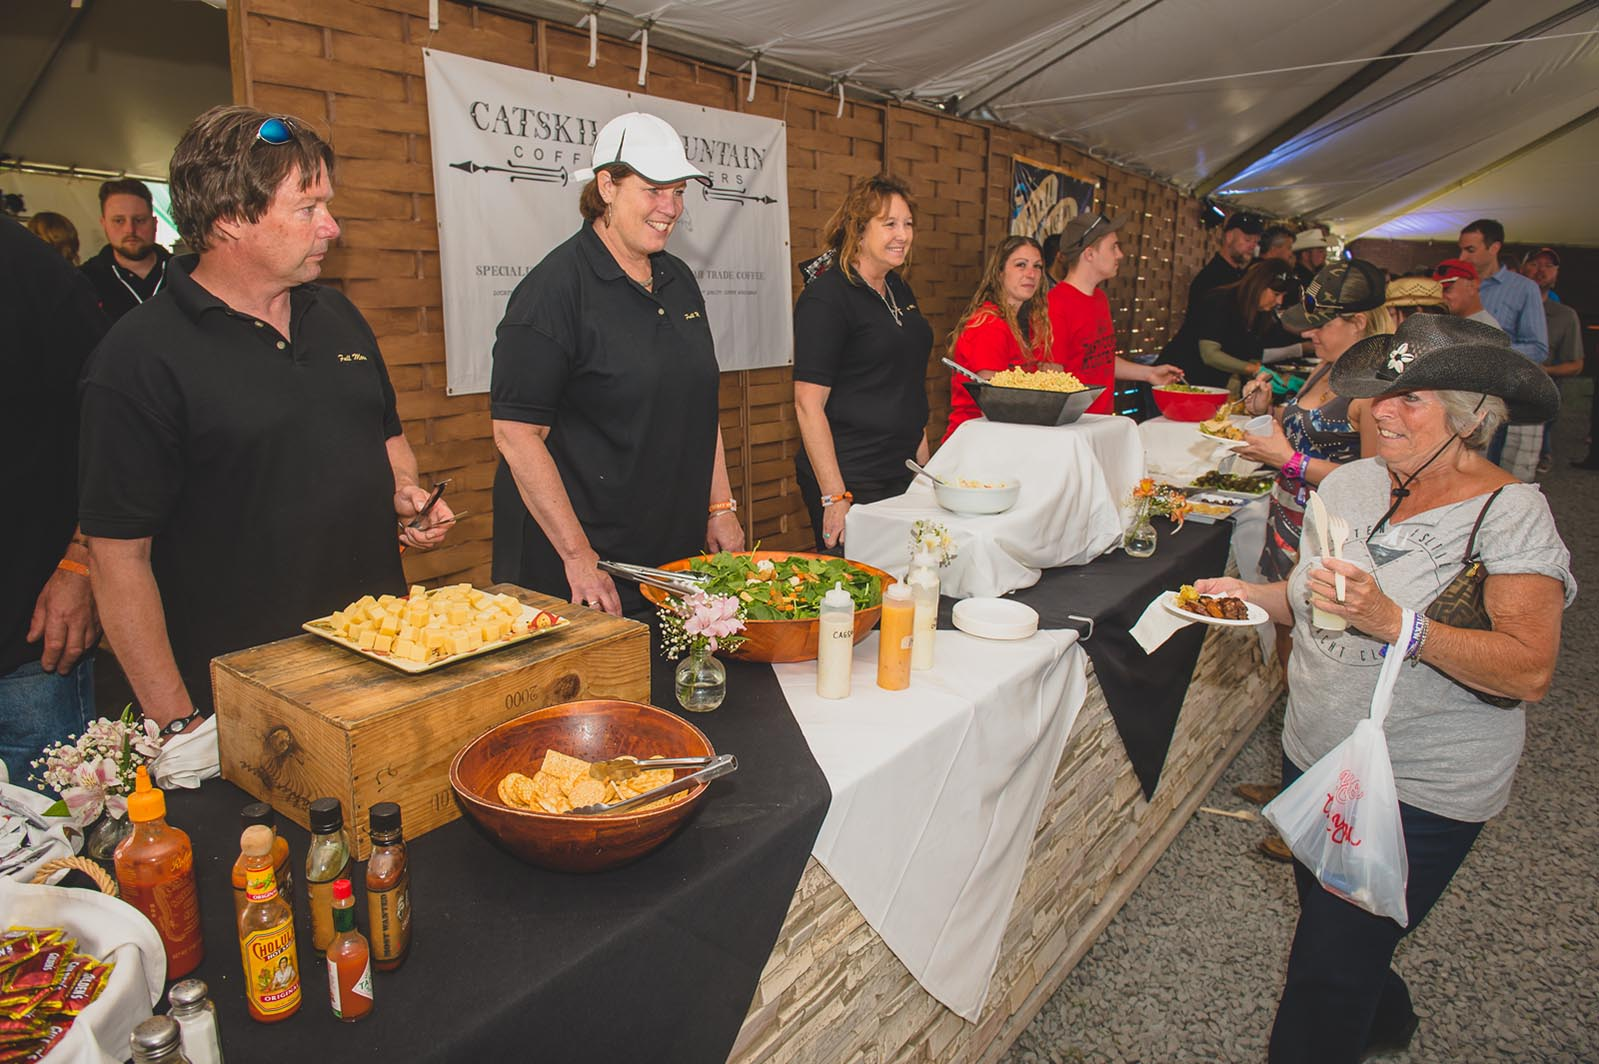 20160610_TasteofCountry_Ambience_Crowd_Timmermans_0206